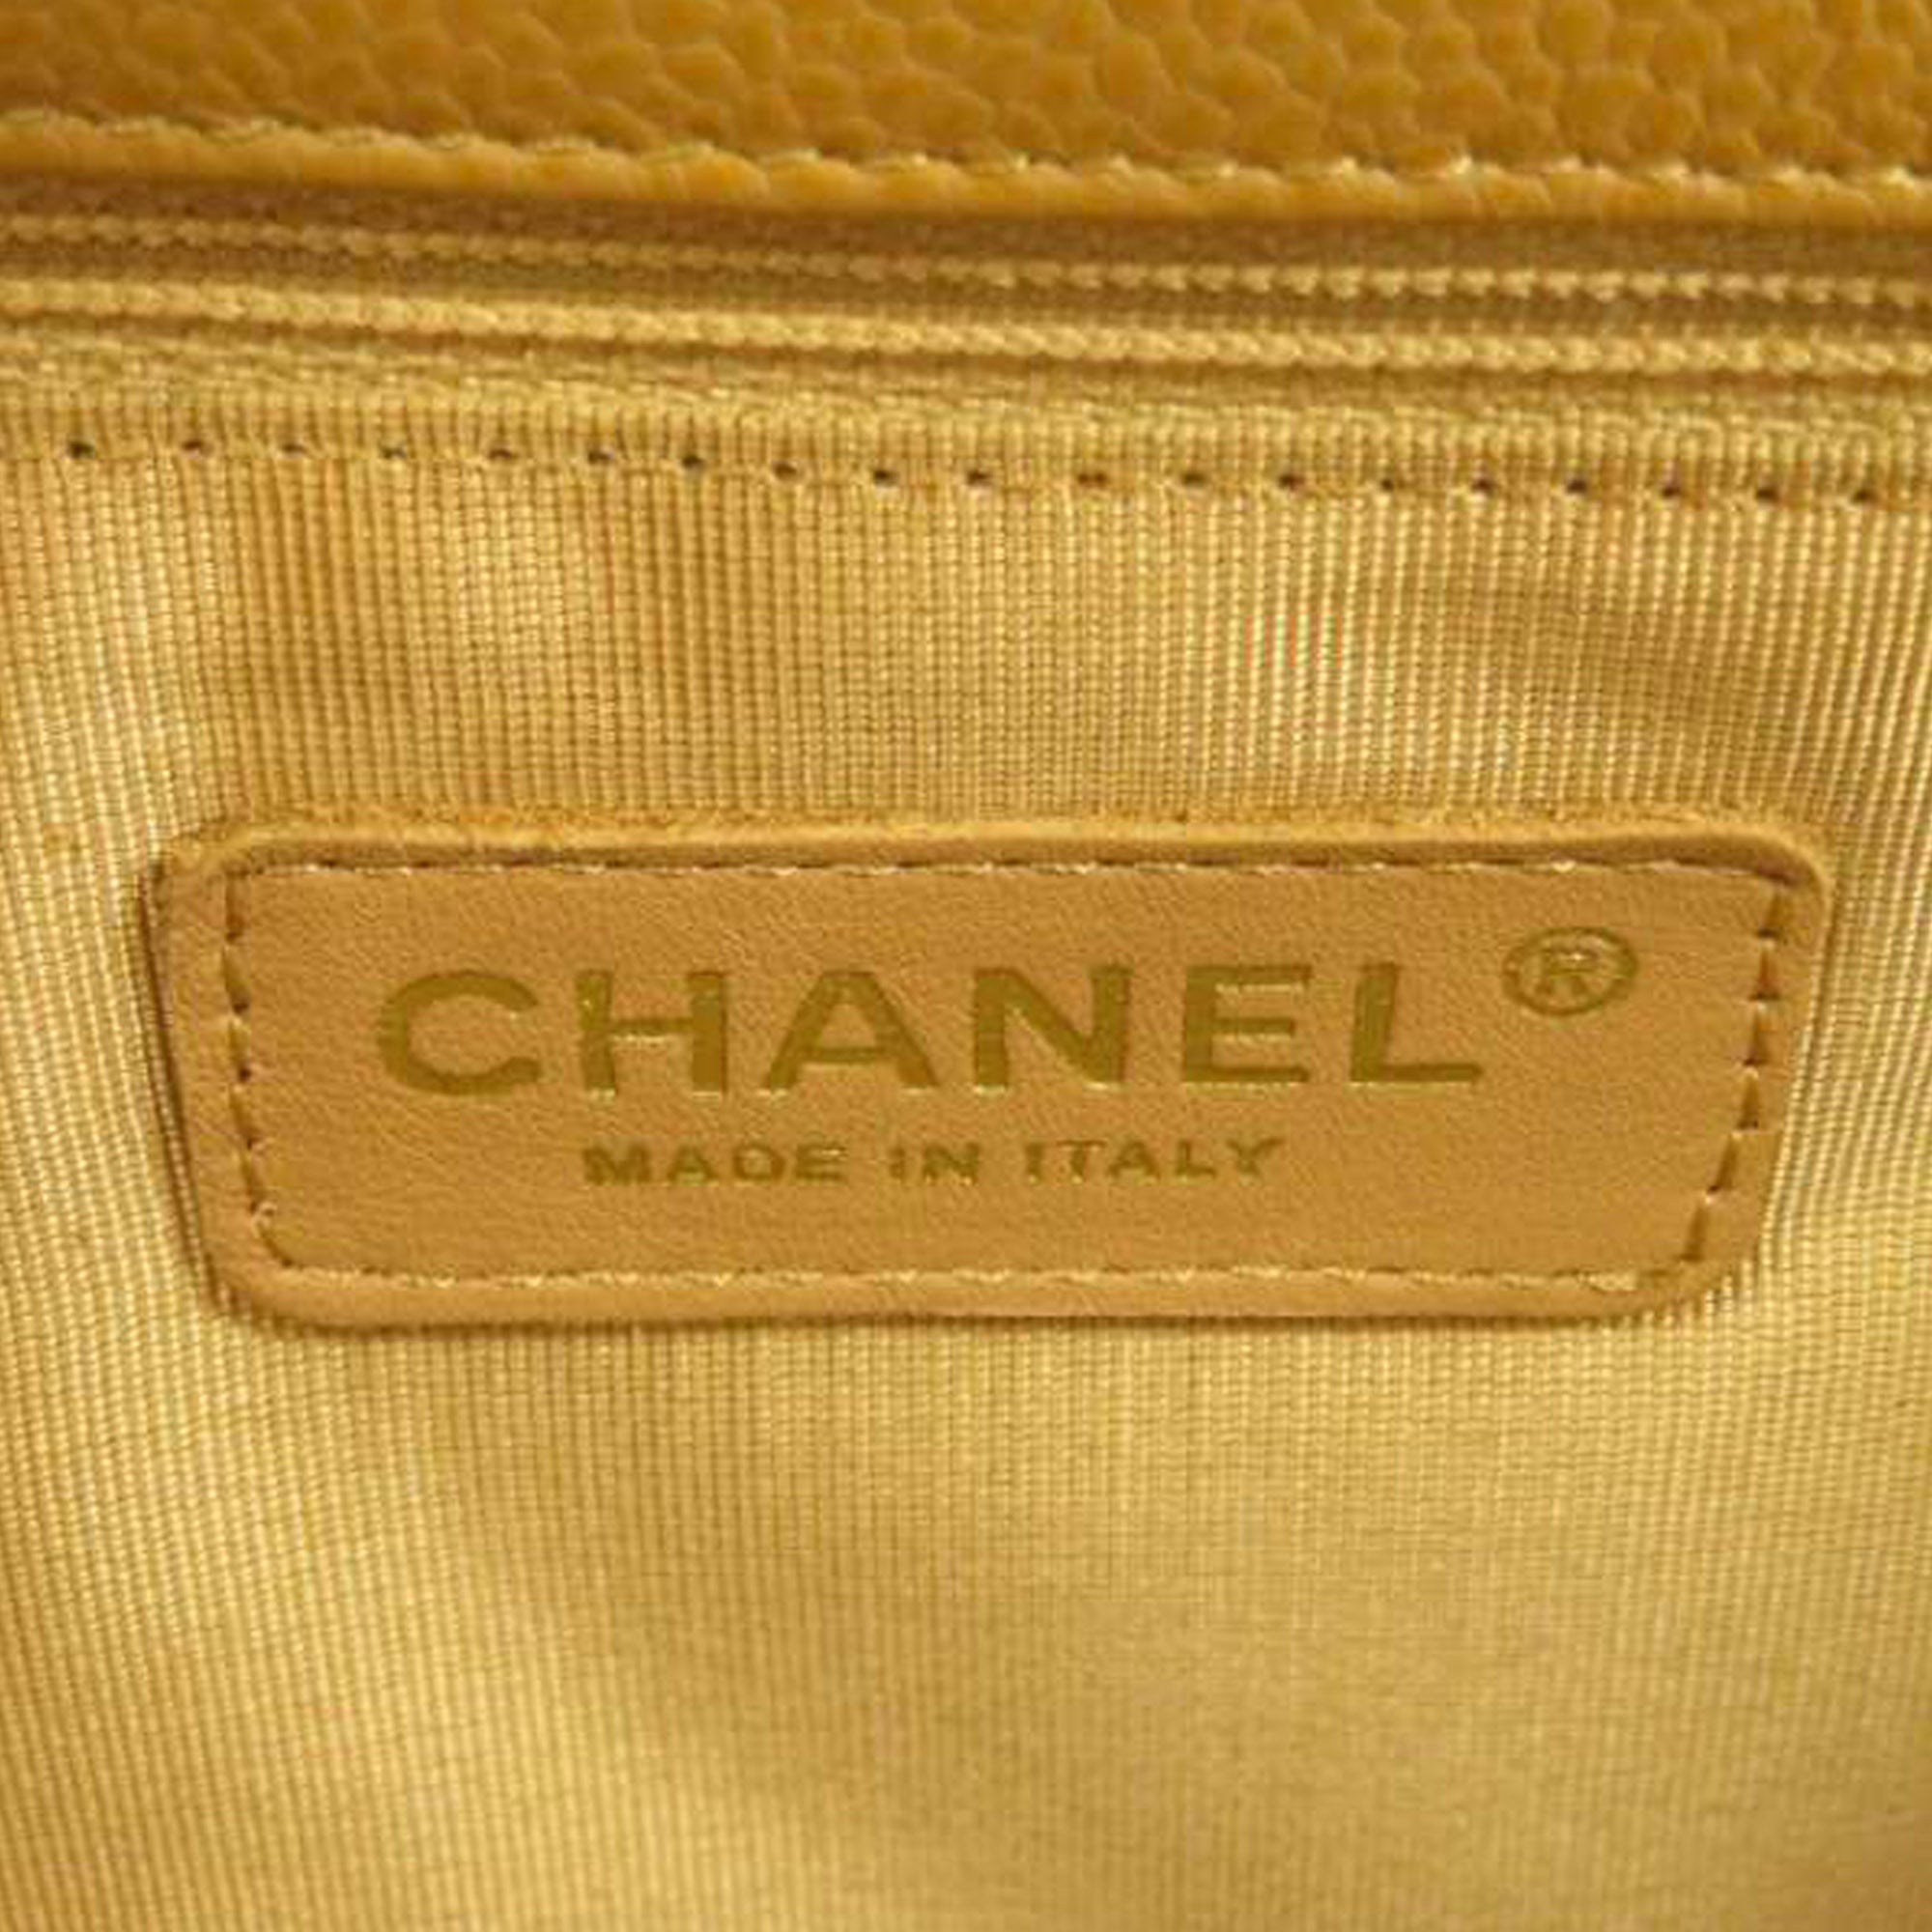 Chanel Brown Petite Shopping Caviar Leather Tote Bag